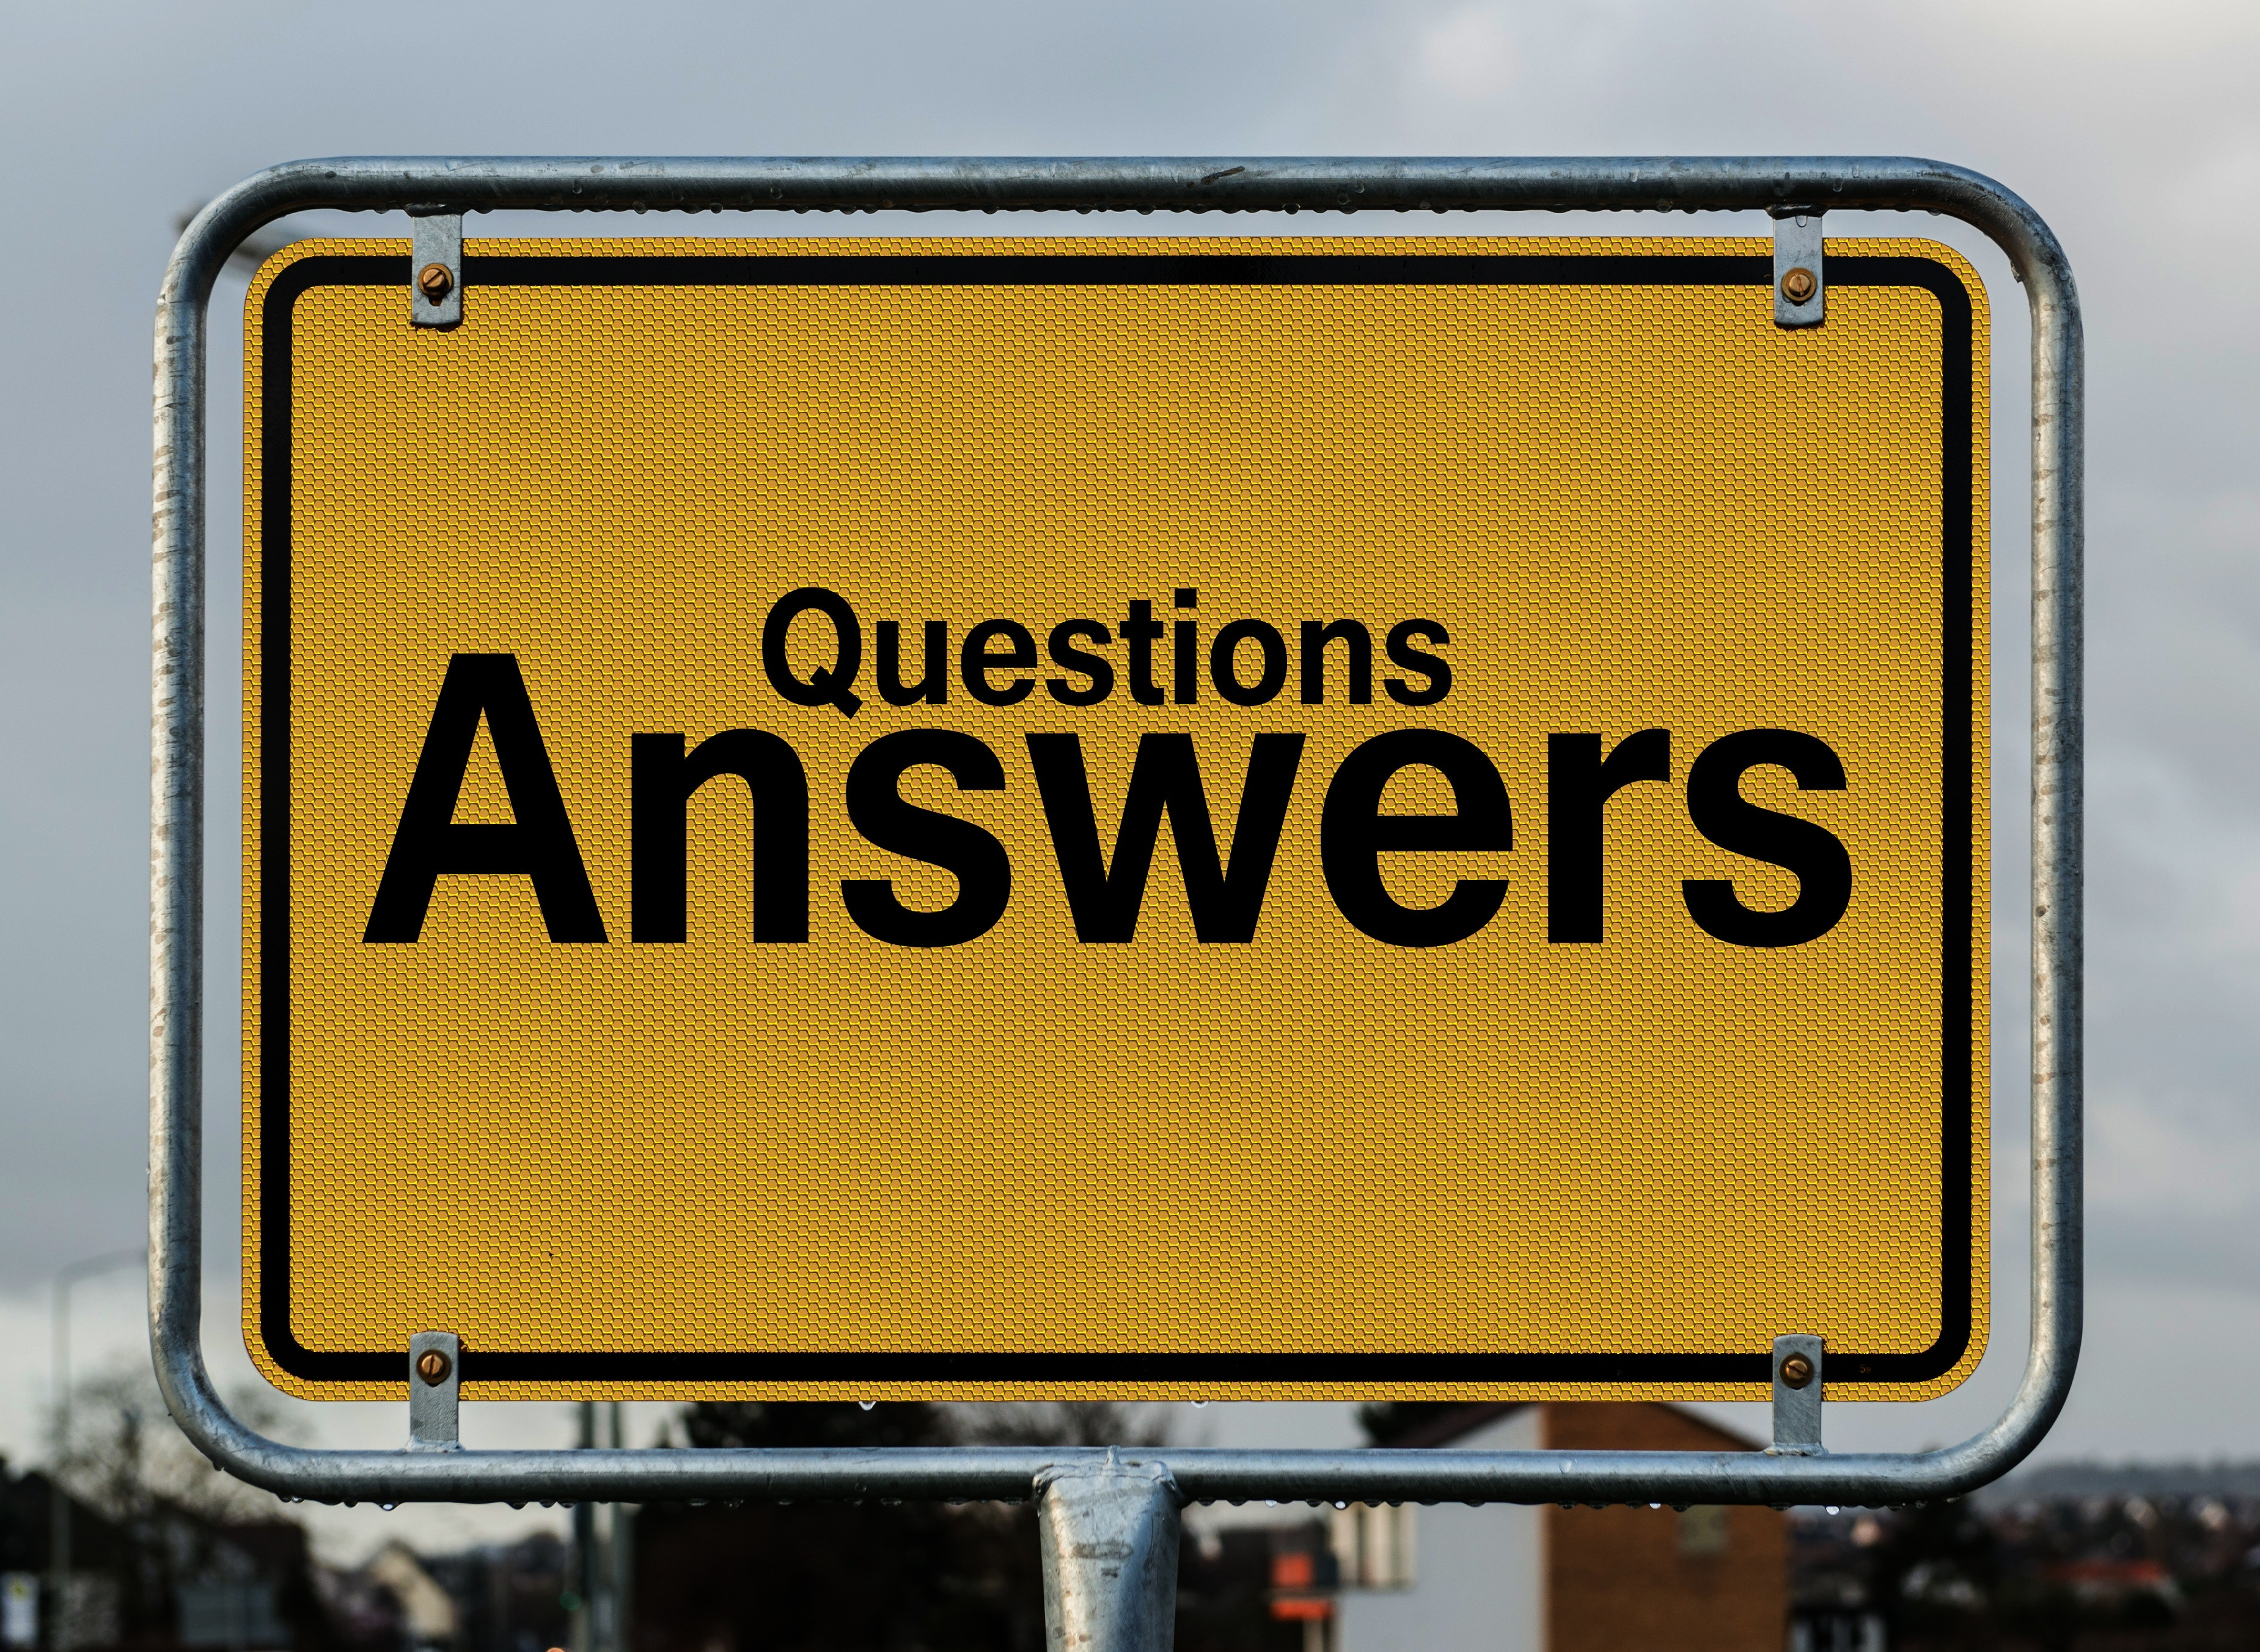 Questions and Answers Billboard